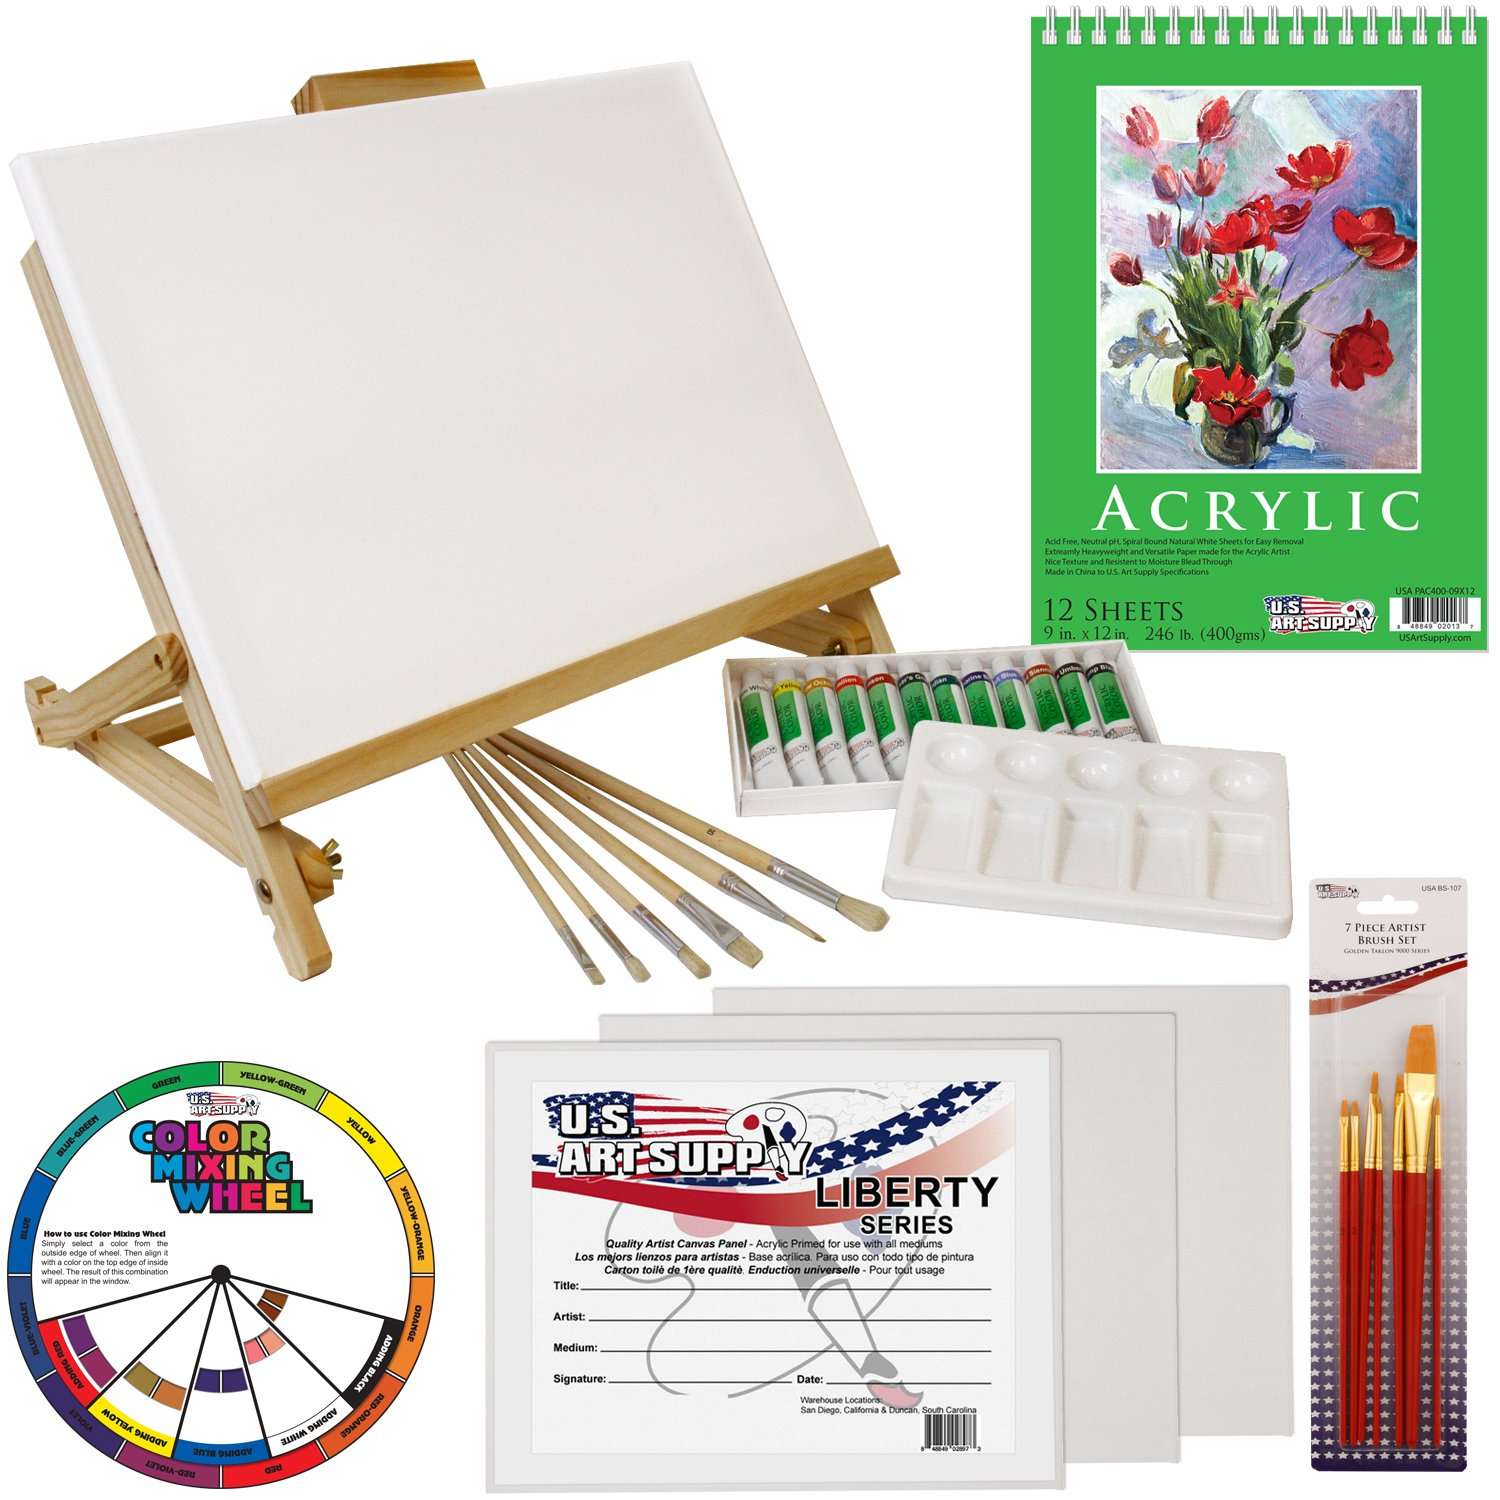 US Art Supply 33 Piece Custom Artist Acrylic Painting Set with Table Easel, Paint, Canvas and Accessories KIT-ACR-PS-071